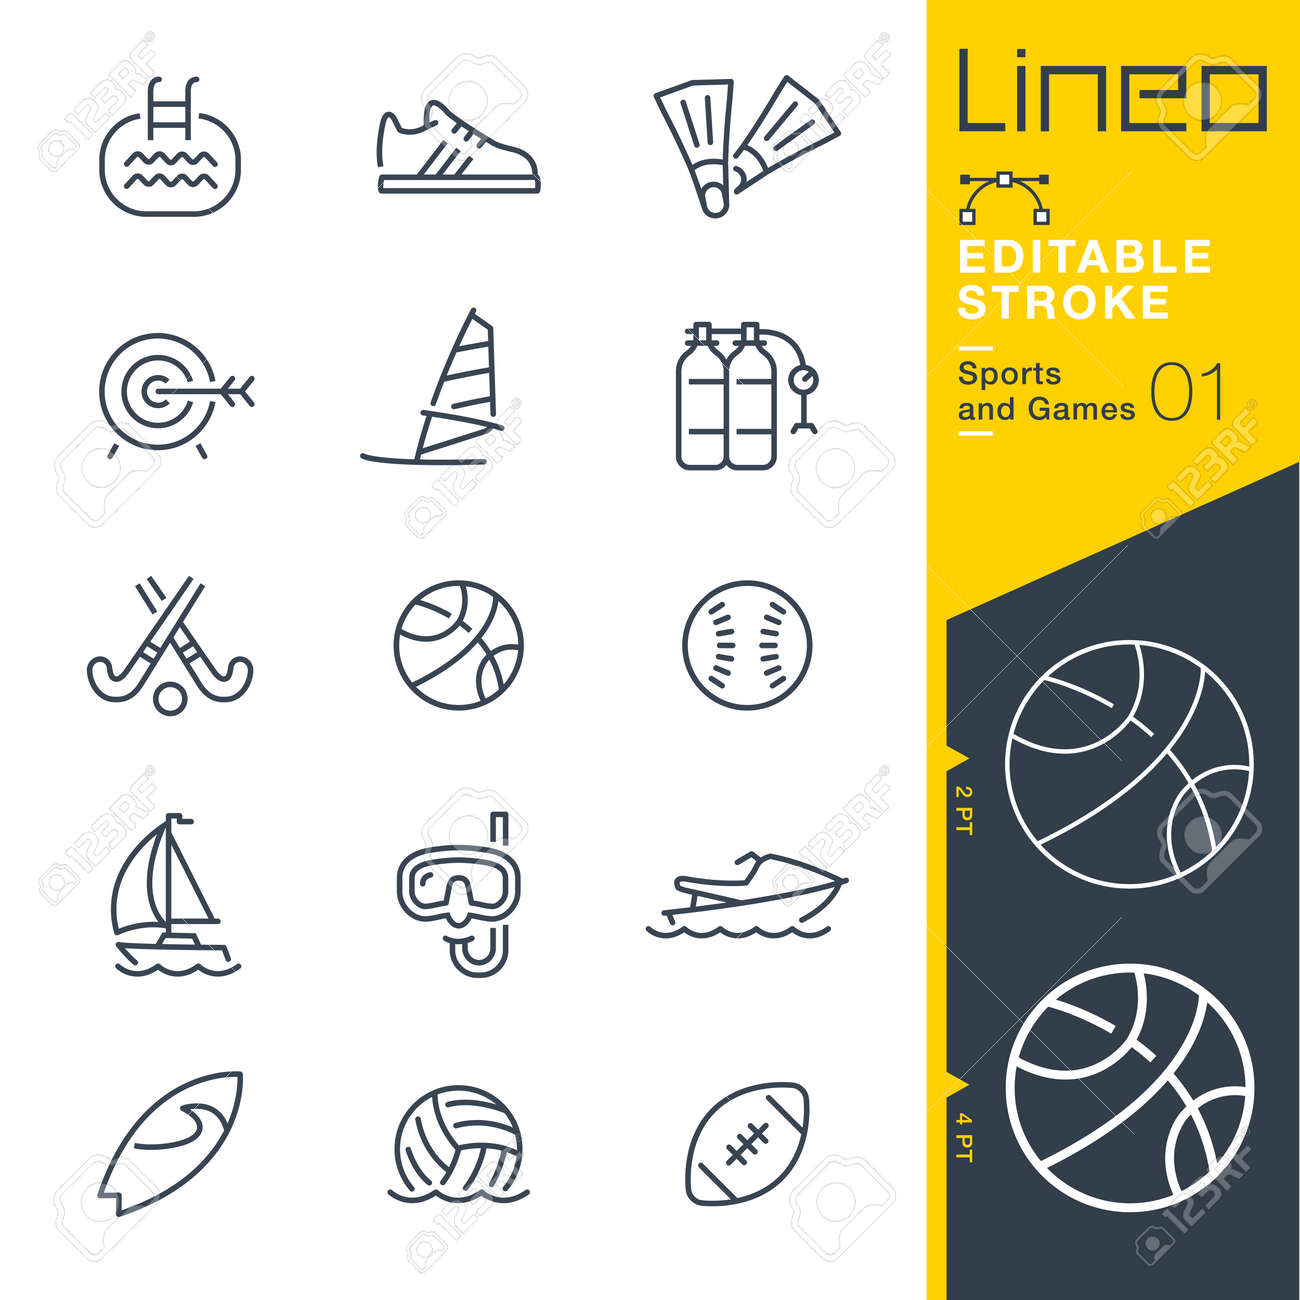 Lineo Editable Stroke - Sports and Games line icons Vector Icons - Adjust stroke weight - Change to any color - 85641770